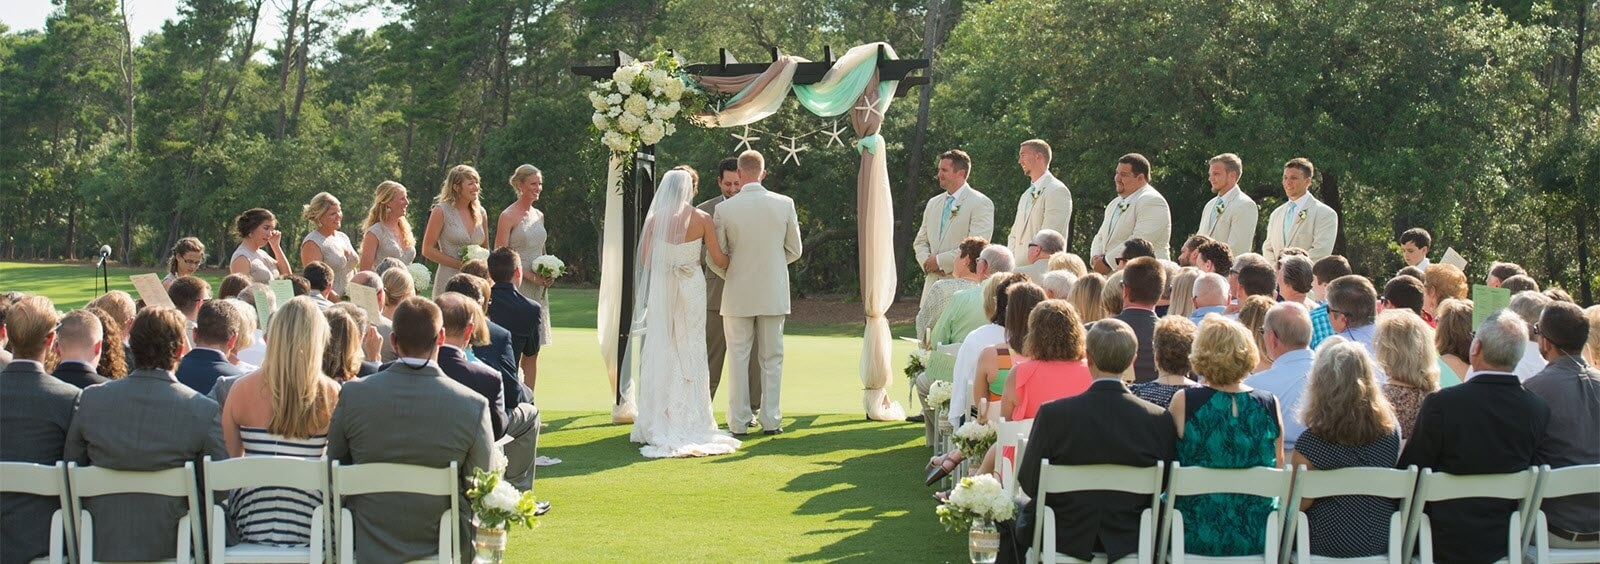 Wedding Ceremonies at Sharks Tooth